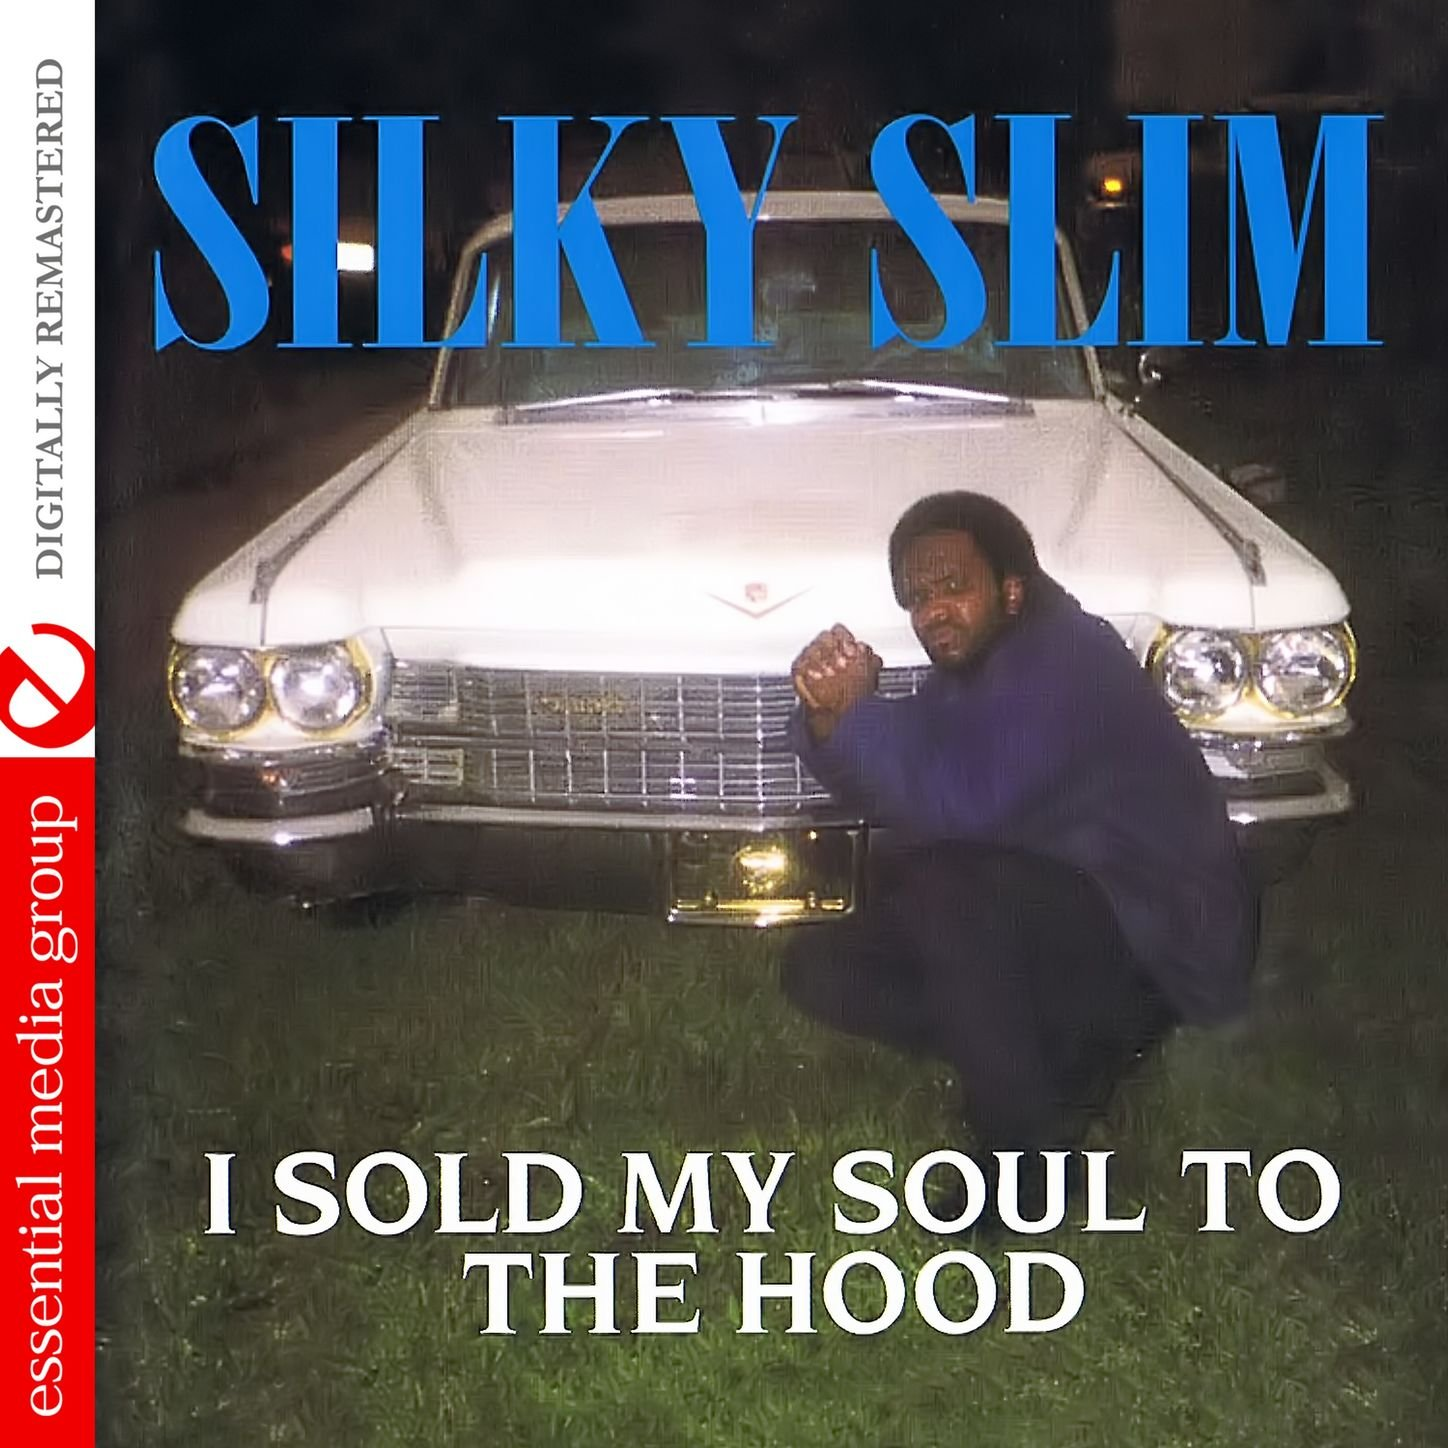 Silky Slim – I Sold My Soul To The Hood (2017) [FLAC]